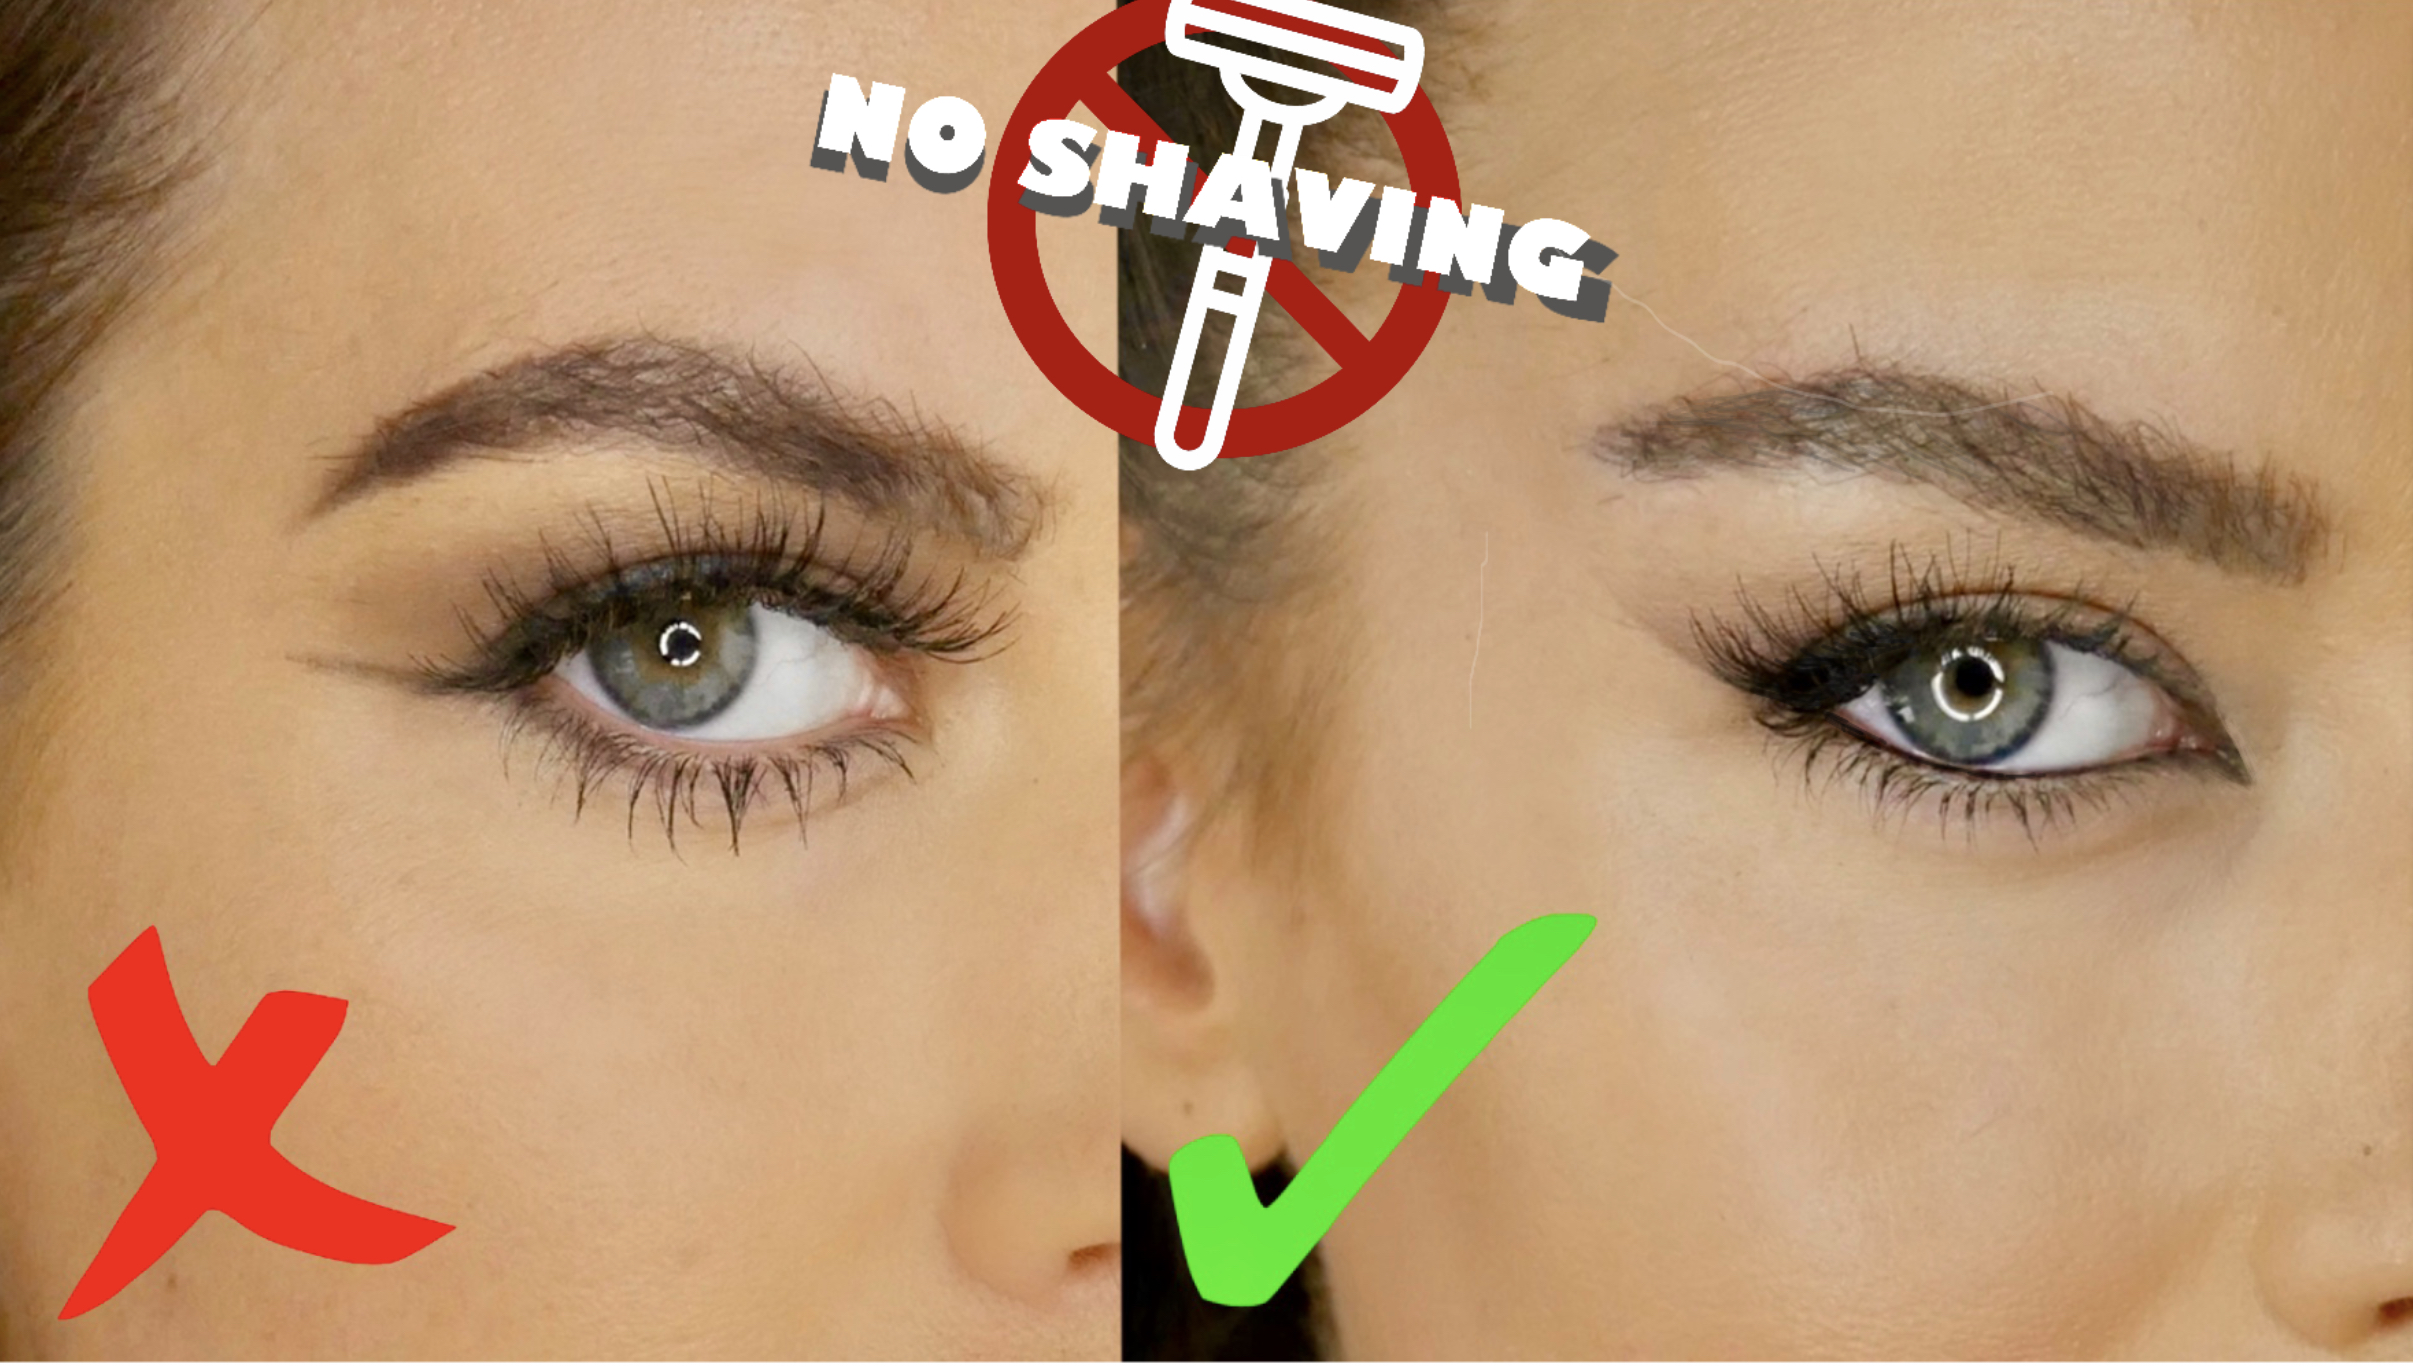 Fox eyes tutorial